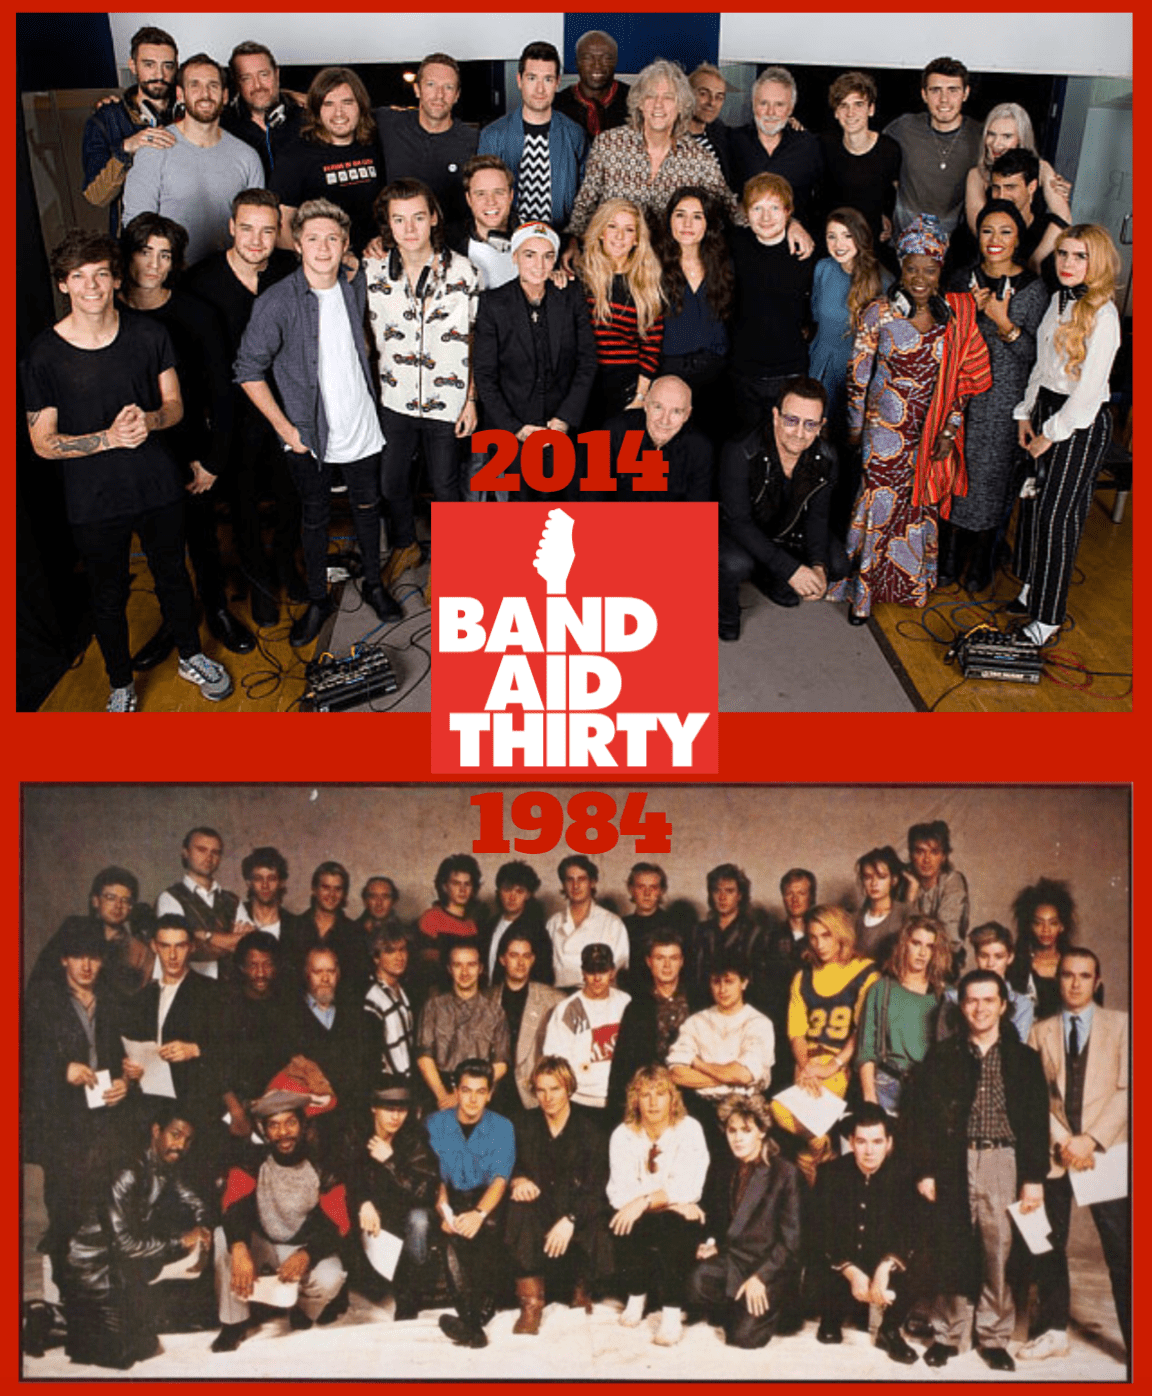 (Band Aid 30 - Do They Know It's Christmas? via tednguyenusa.com)